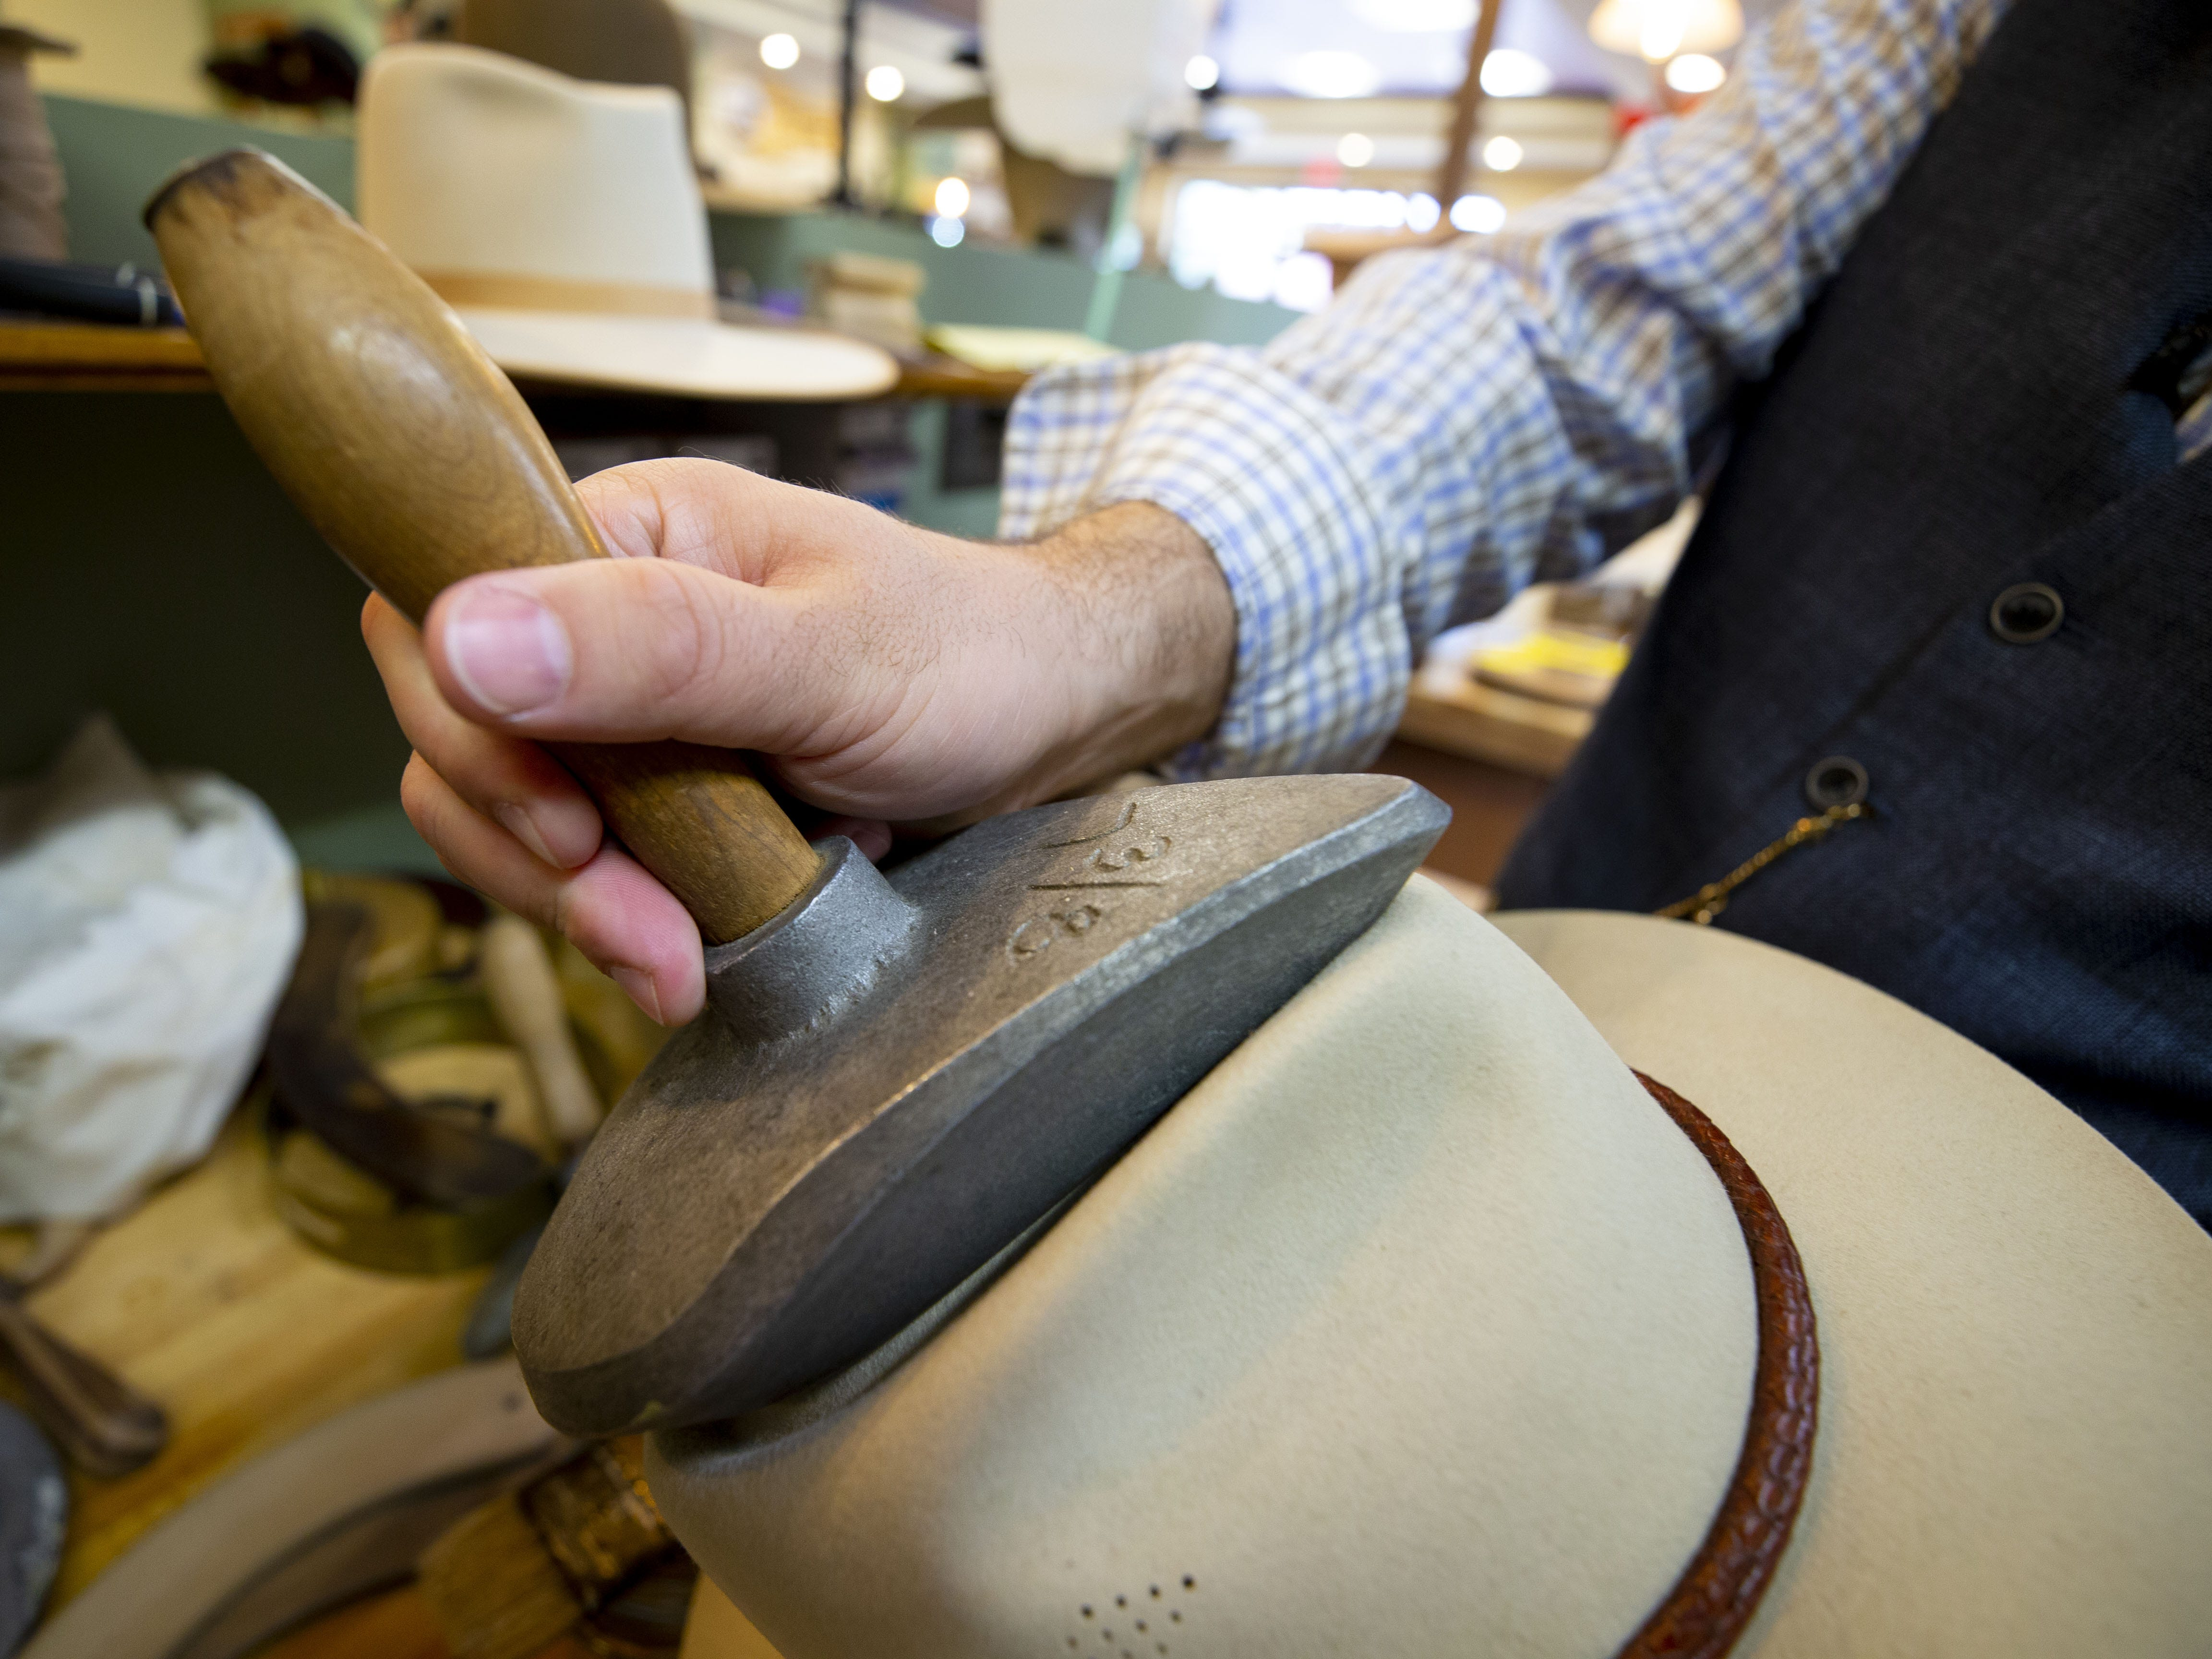 Eric Watson owns Watson's Hat Shop in Cave Creek. Watson makes hats with vintage equipment using processes that are centuries old. His love for hats started after he saw the movie Indiana Jones when he was ten.